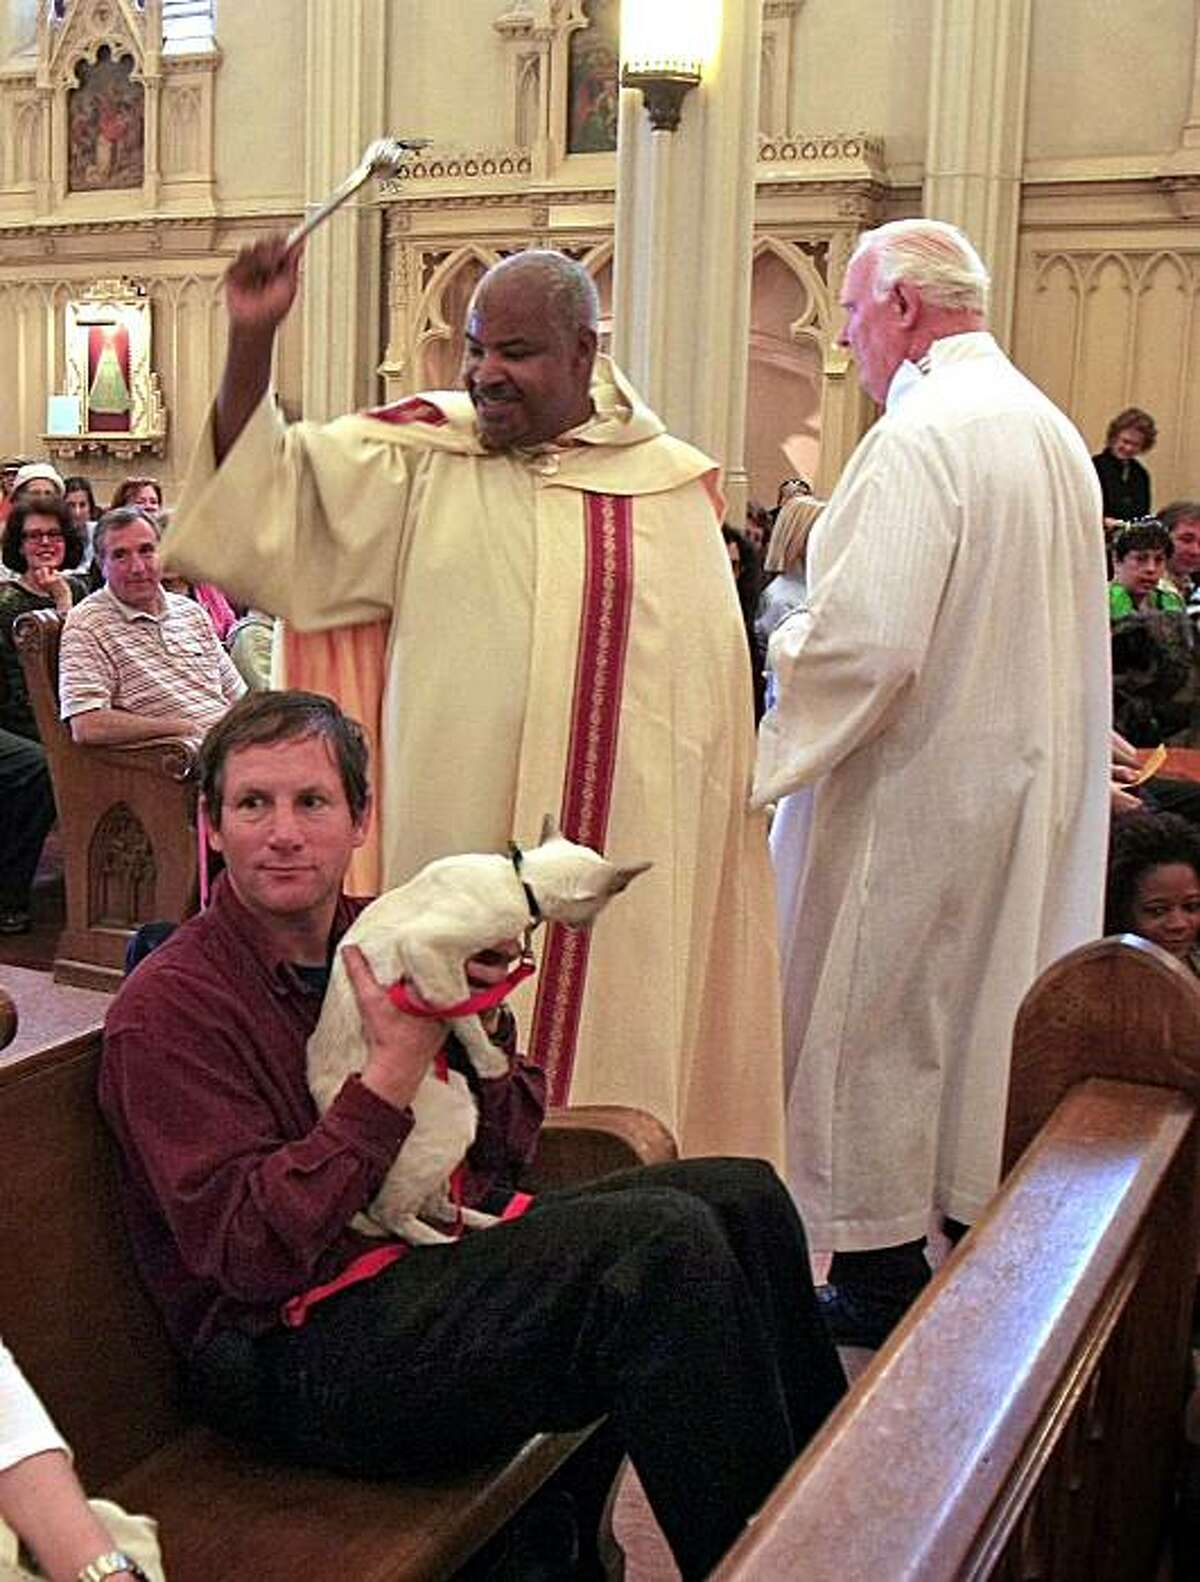 Tom Ross and his cat, Kyro, received a blessing from Deacon Charles McNeil at Saturday's North Beach annual street festival, which includes animal blessings at The St. Francis Church.